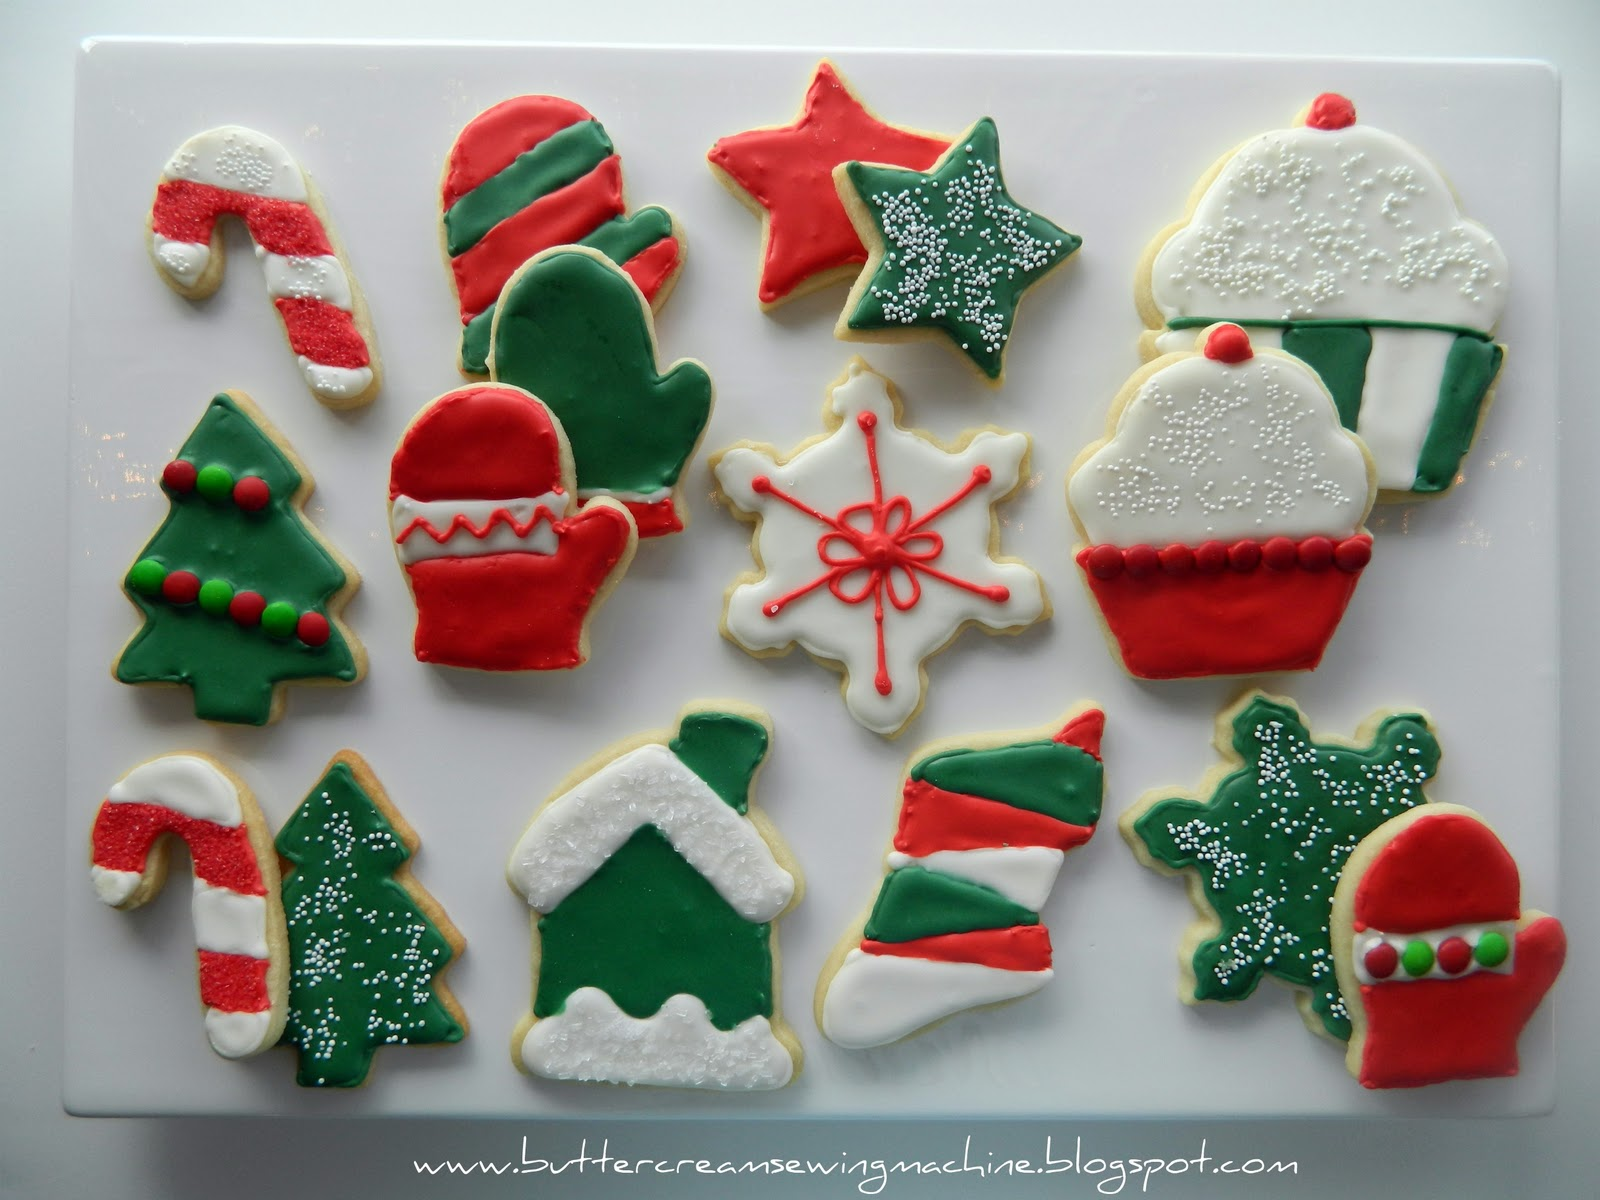 buttercream and a sewing machine decorating christmas cookies - How To Decorate Christmas Cookies